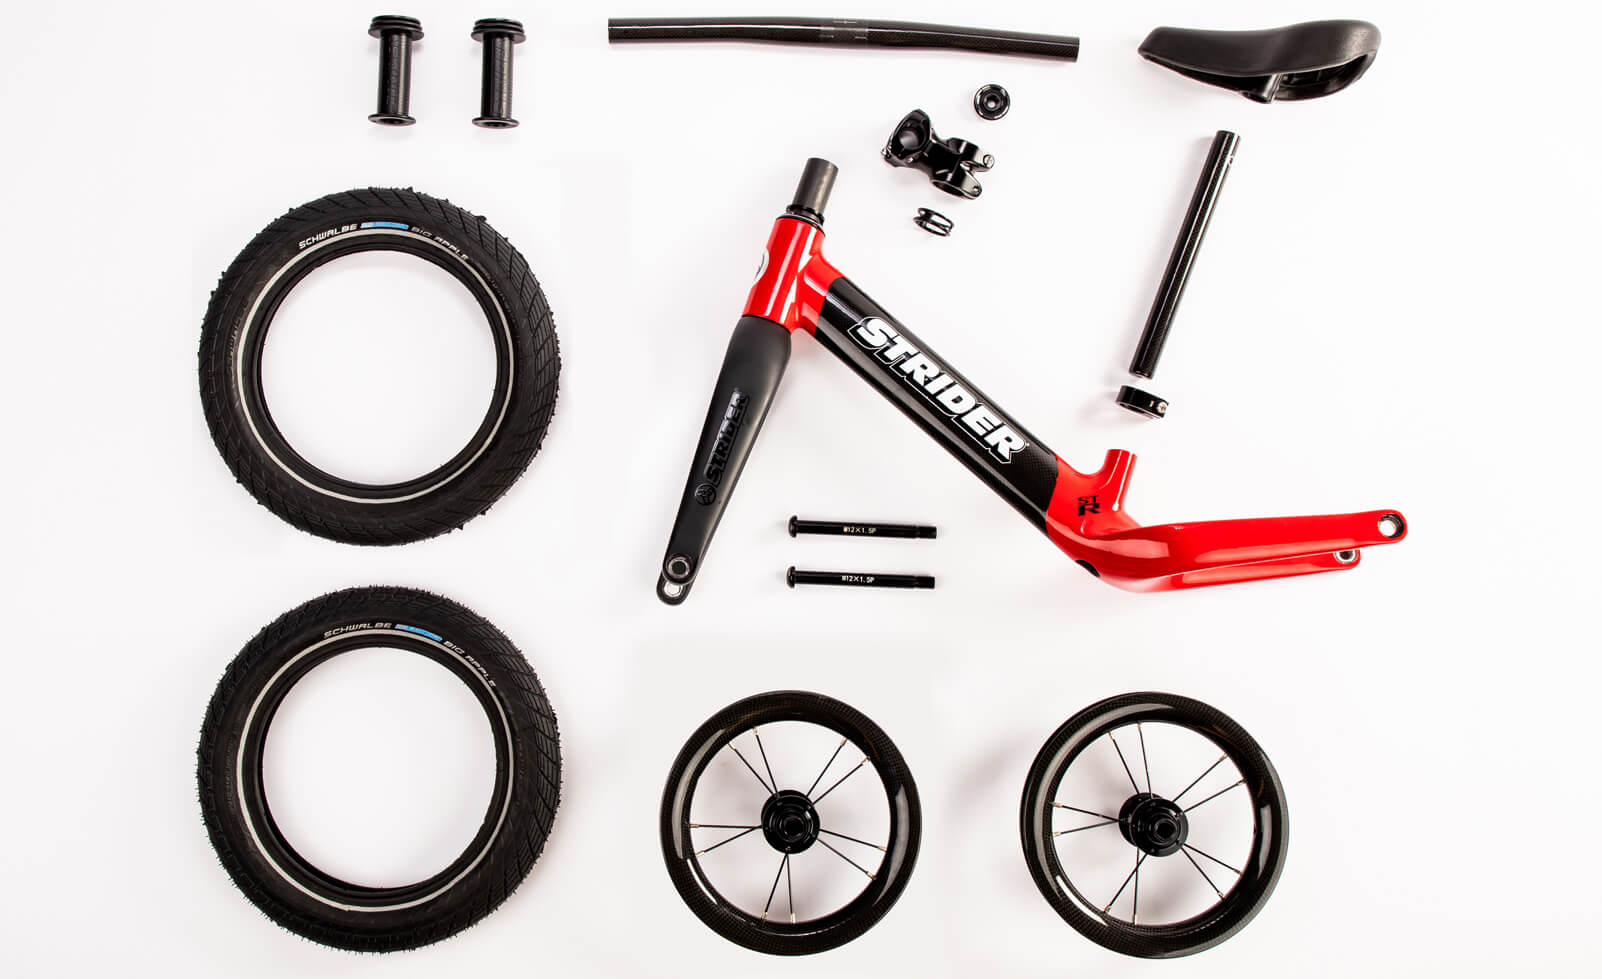 Strider ST-R Carbon Fiber Balance Bike - Parts